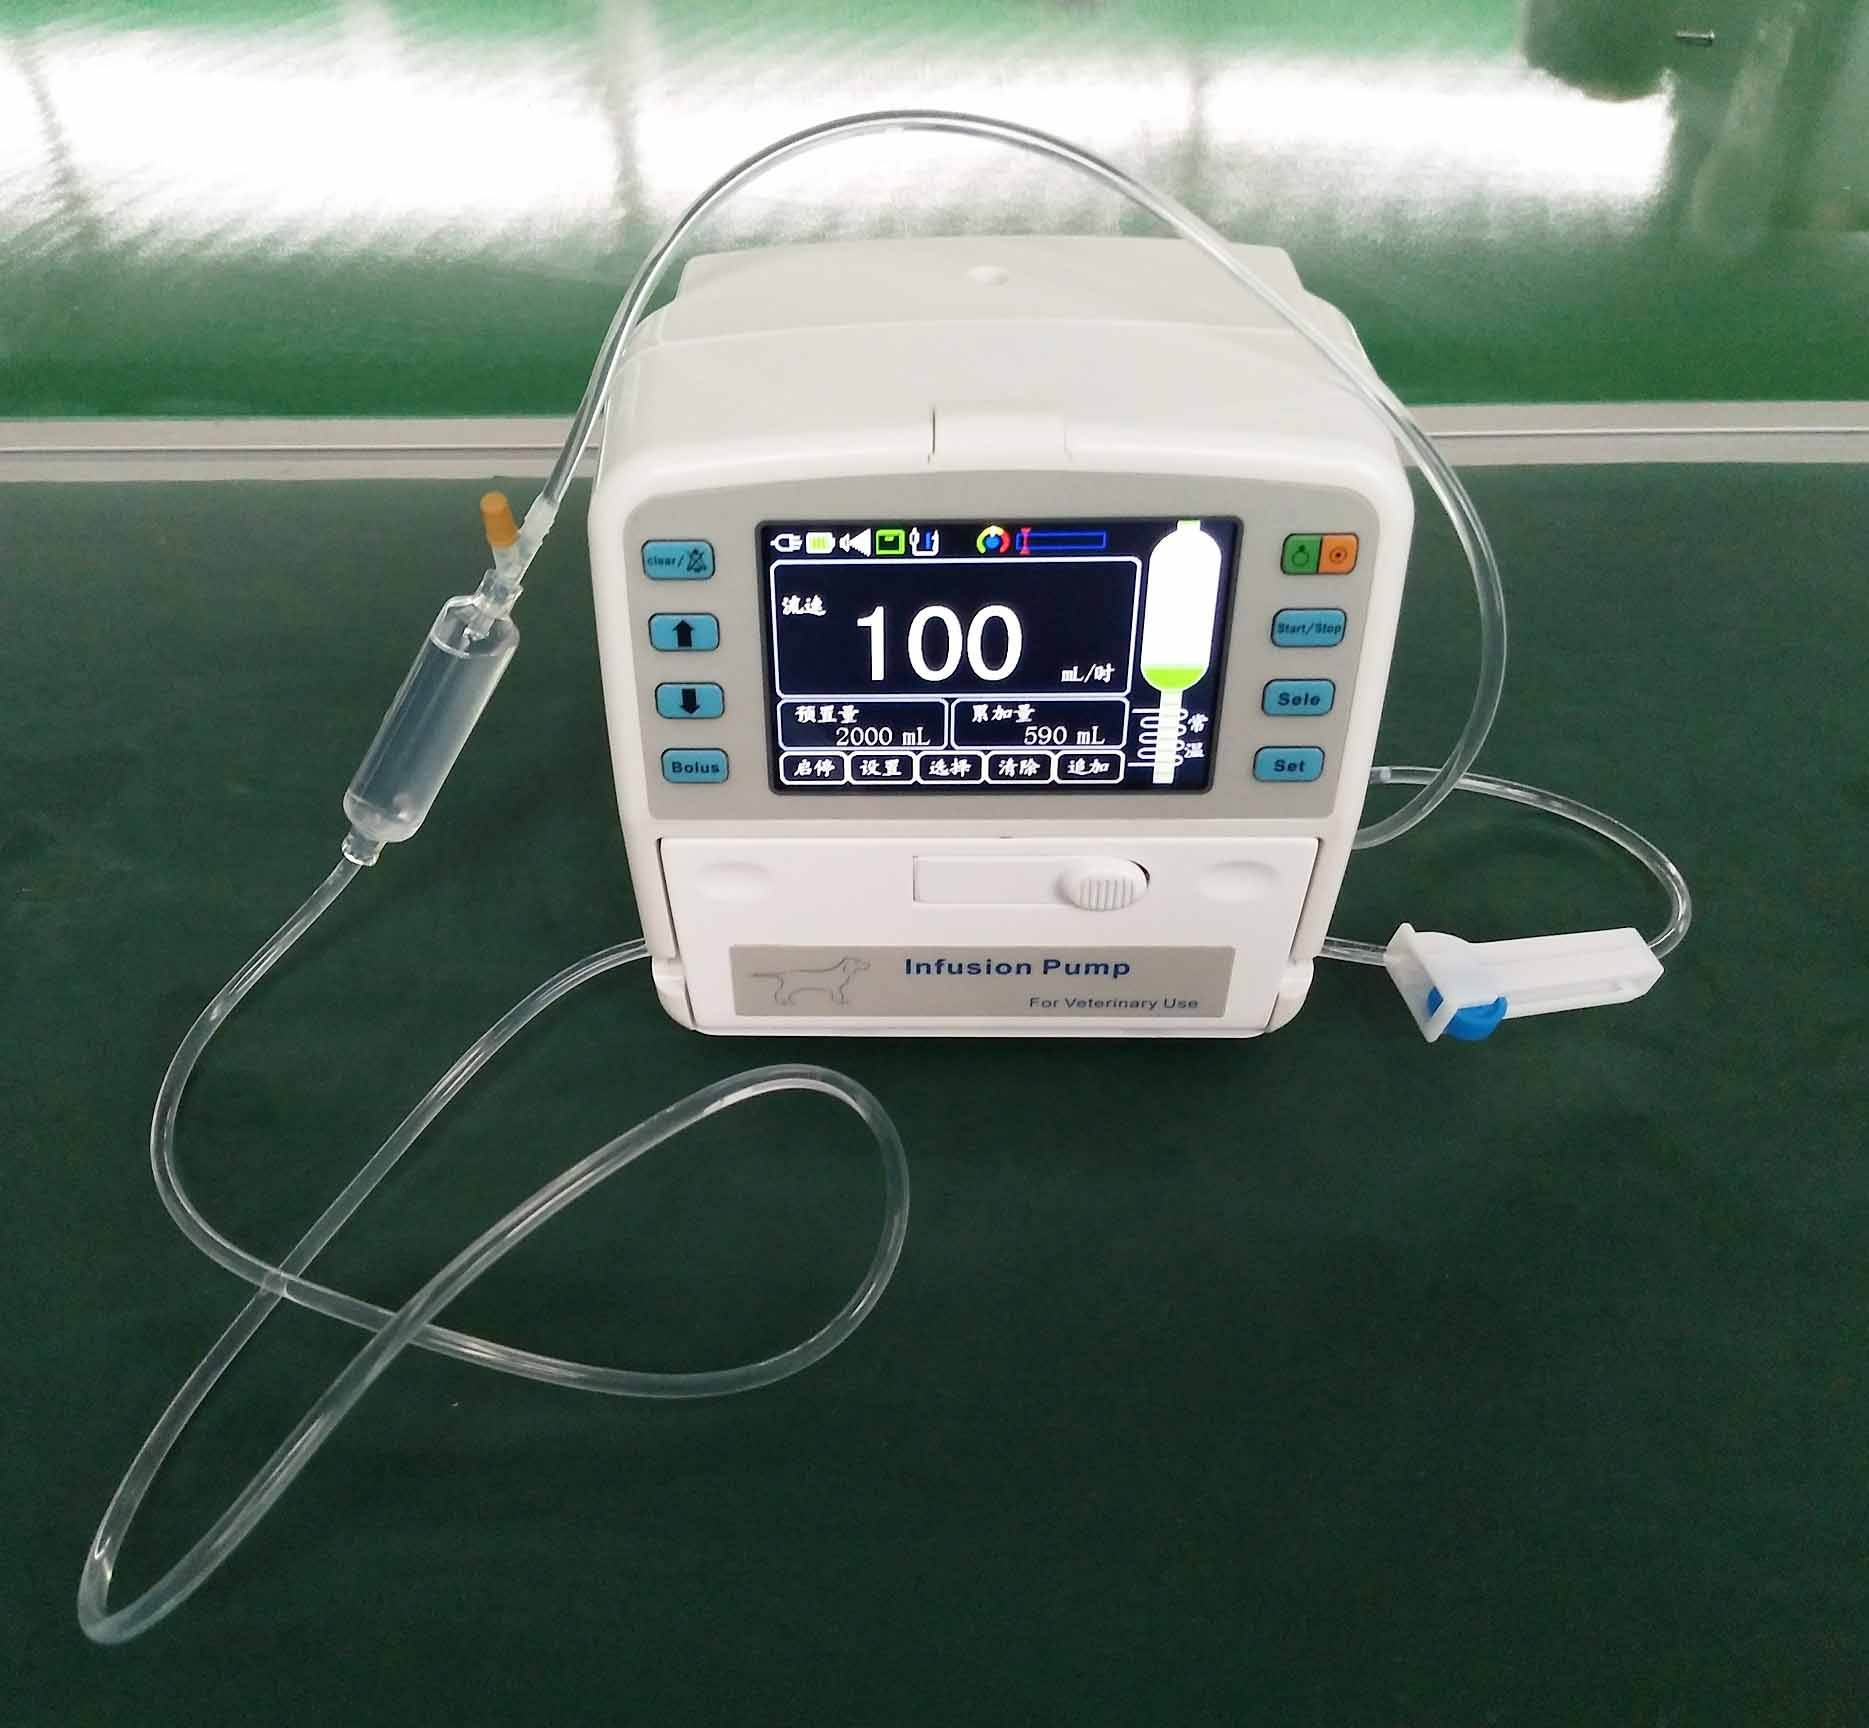 Veterinary IV Infusion Pump with Fluid Warmer and Drug Library